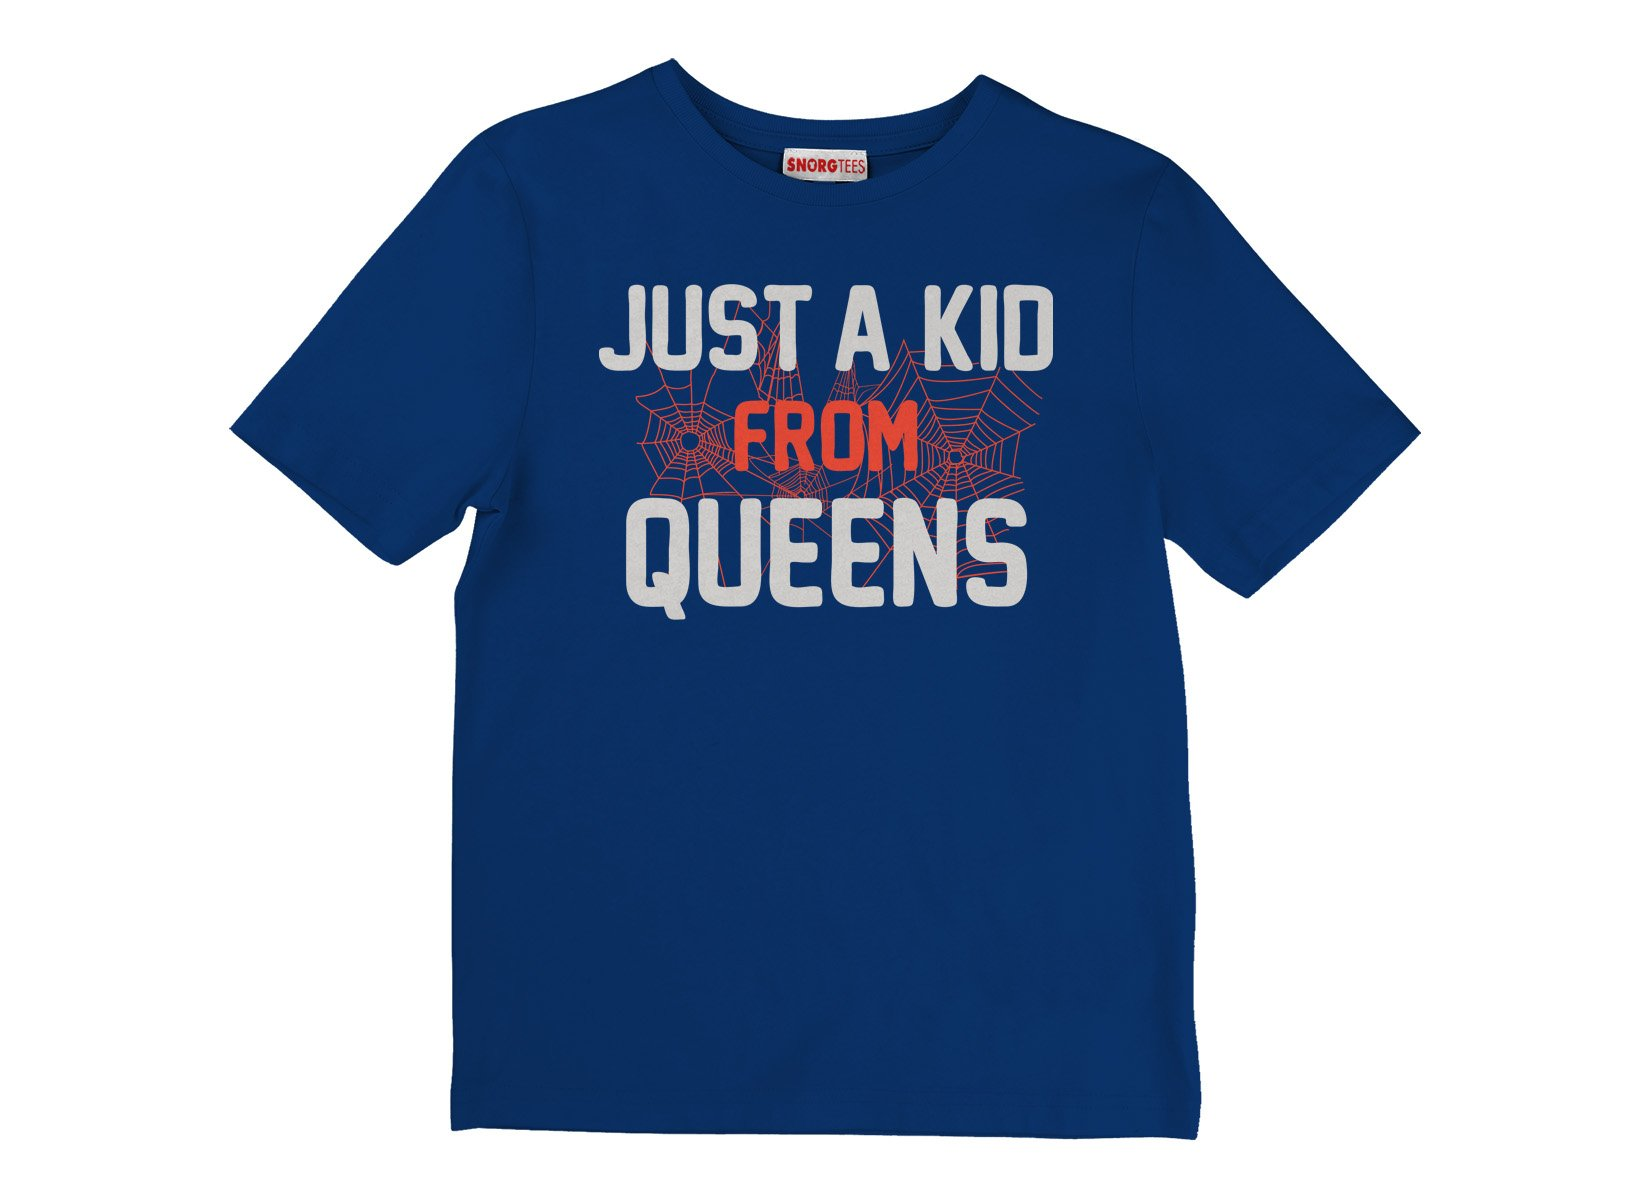 Just A Kid From Queens on Kids T-Shirt